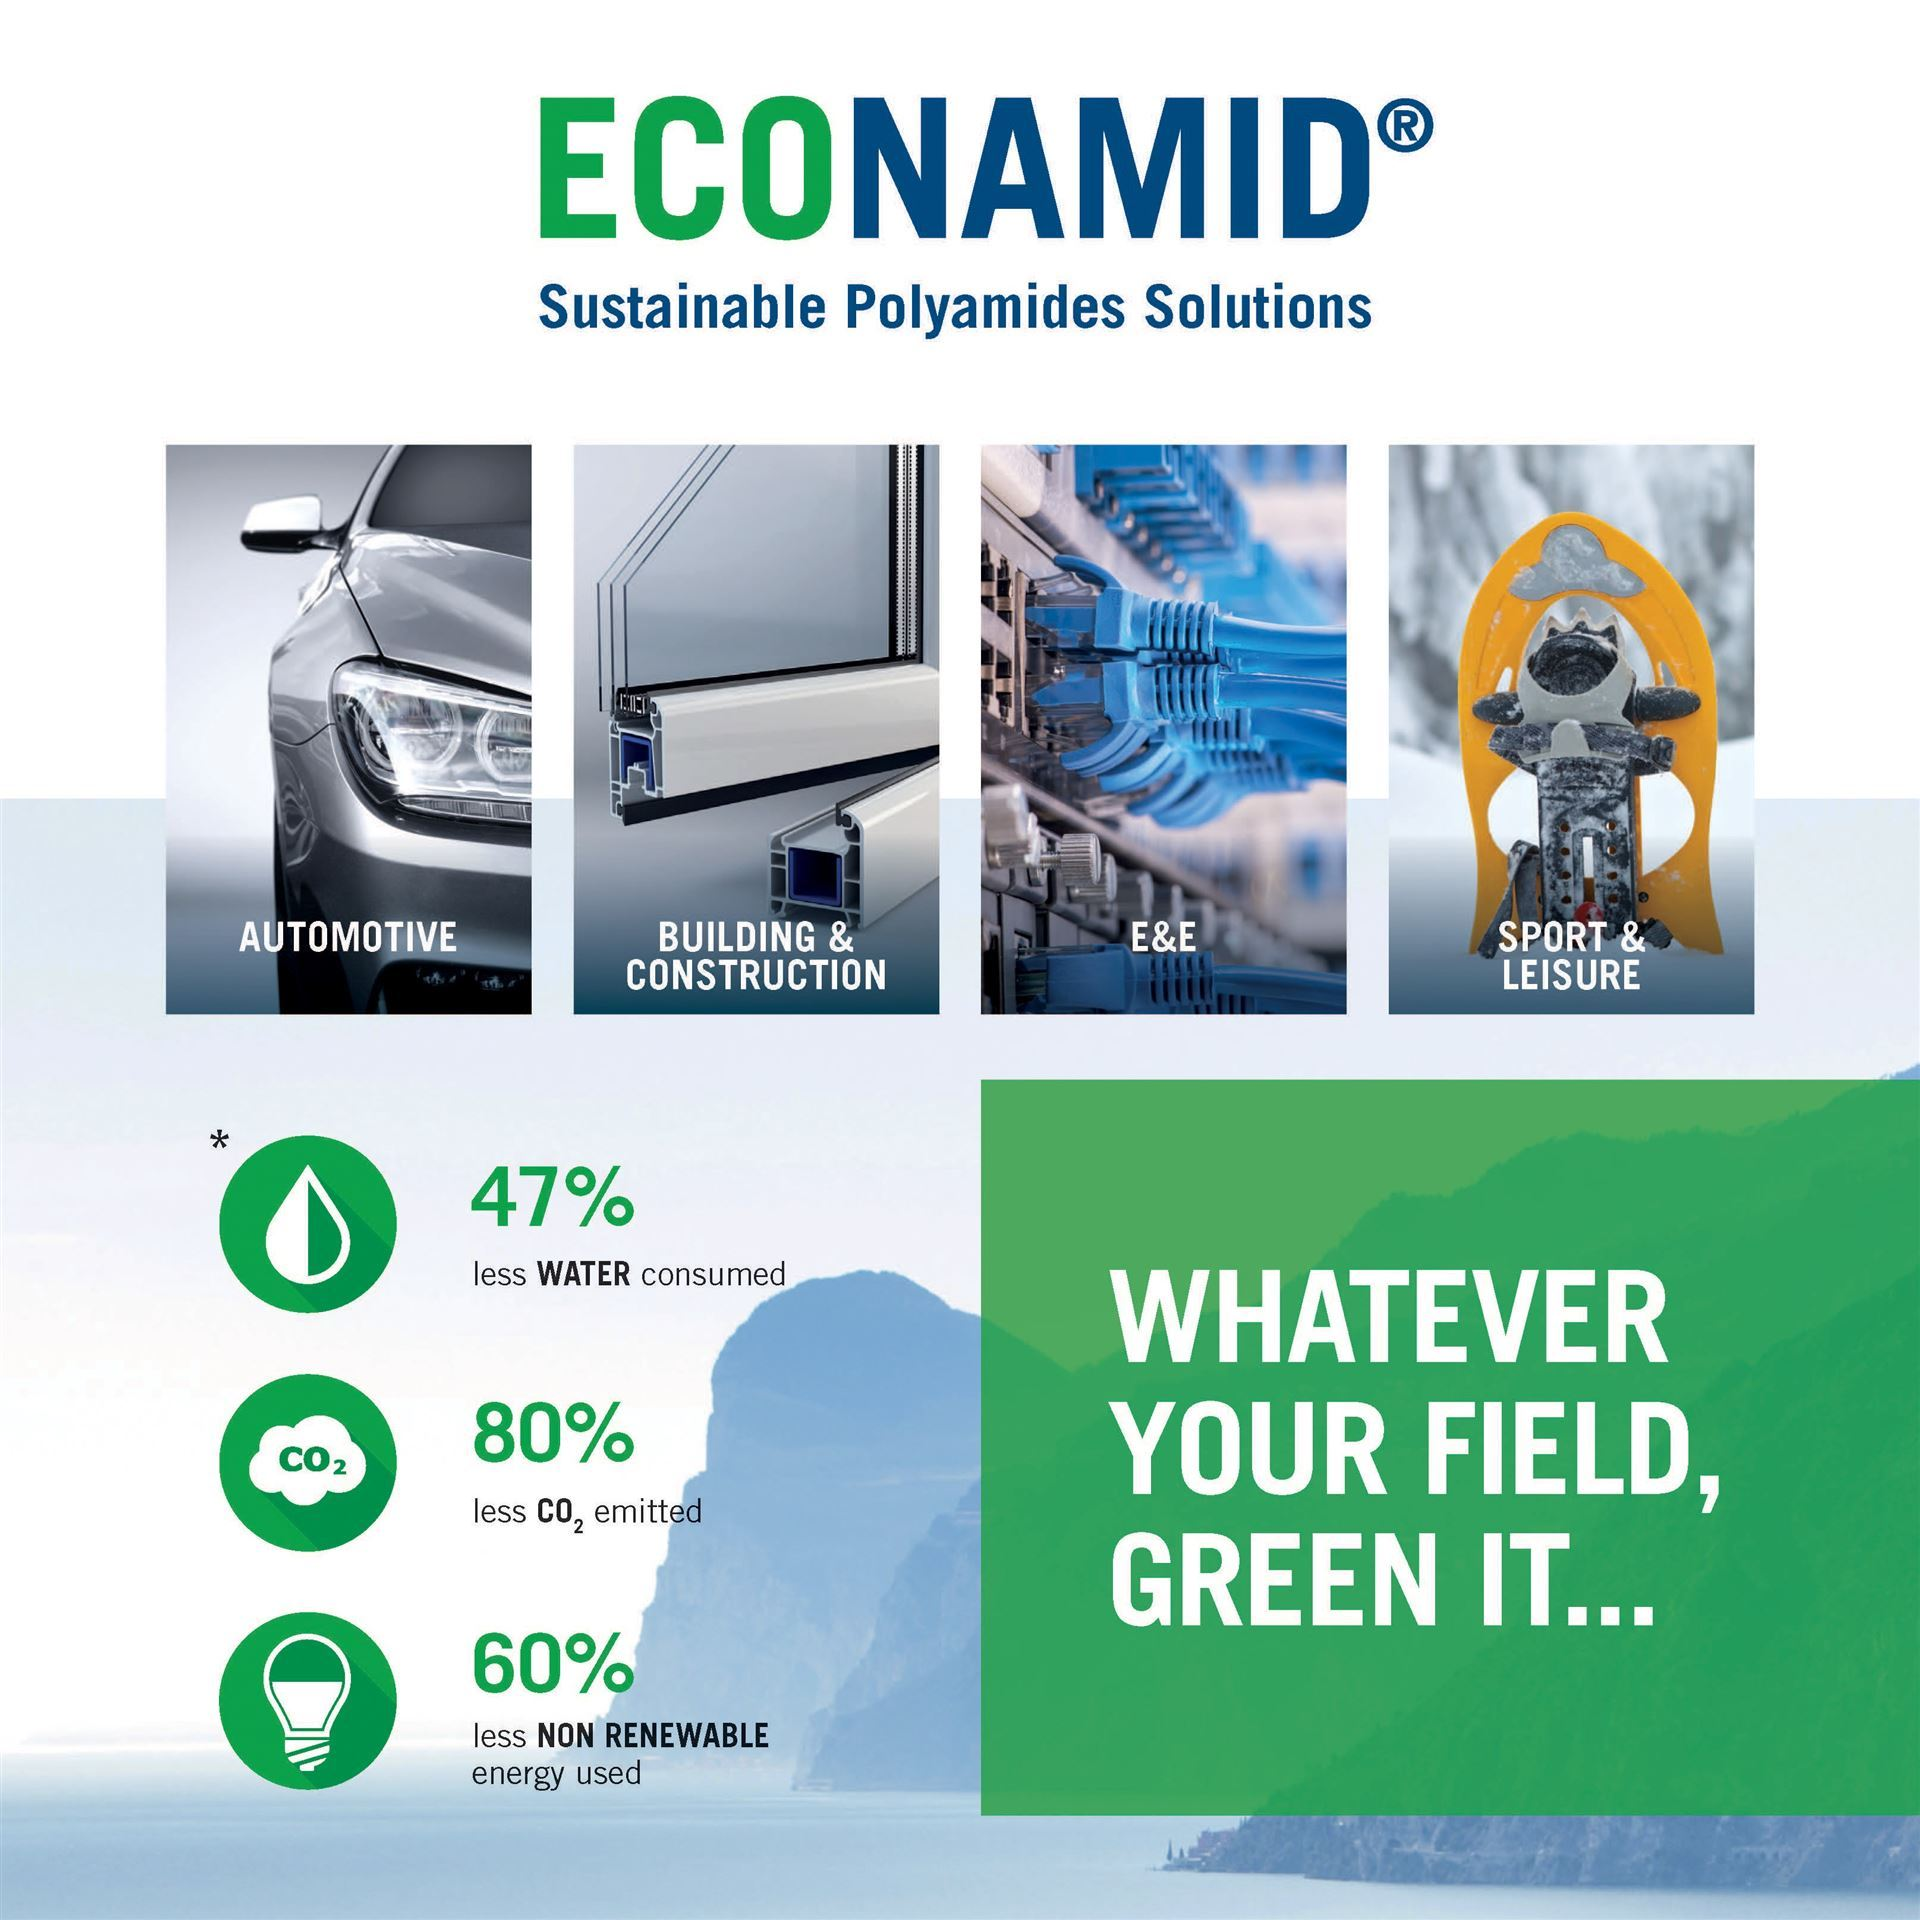 WIS Kunststoffe GmbH is responding to the market with environmentally friendly polyamide!